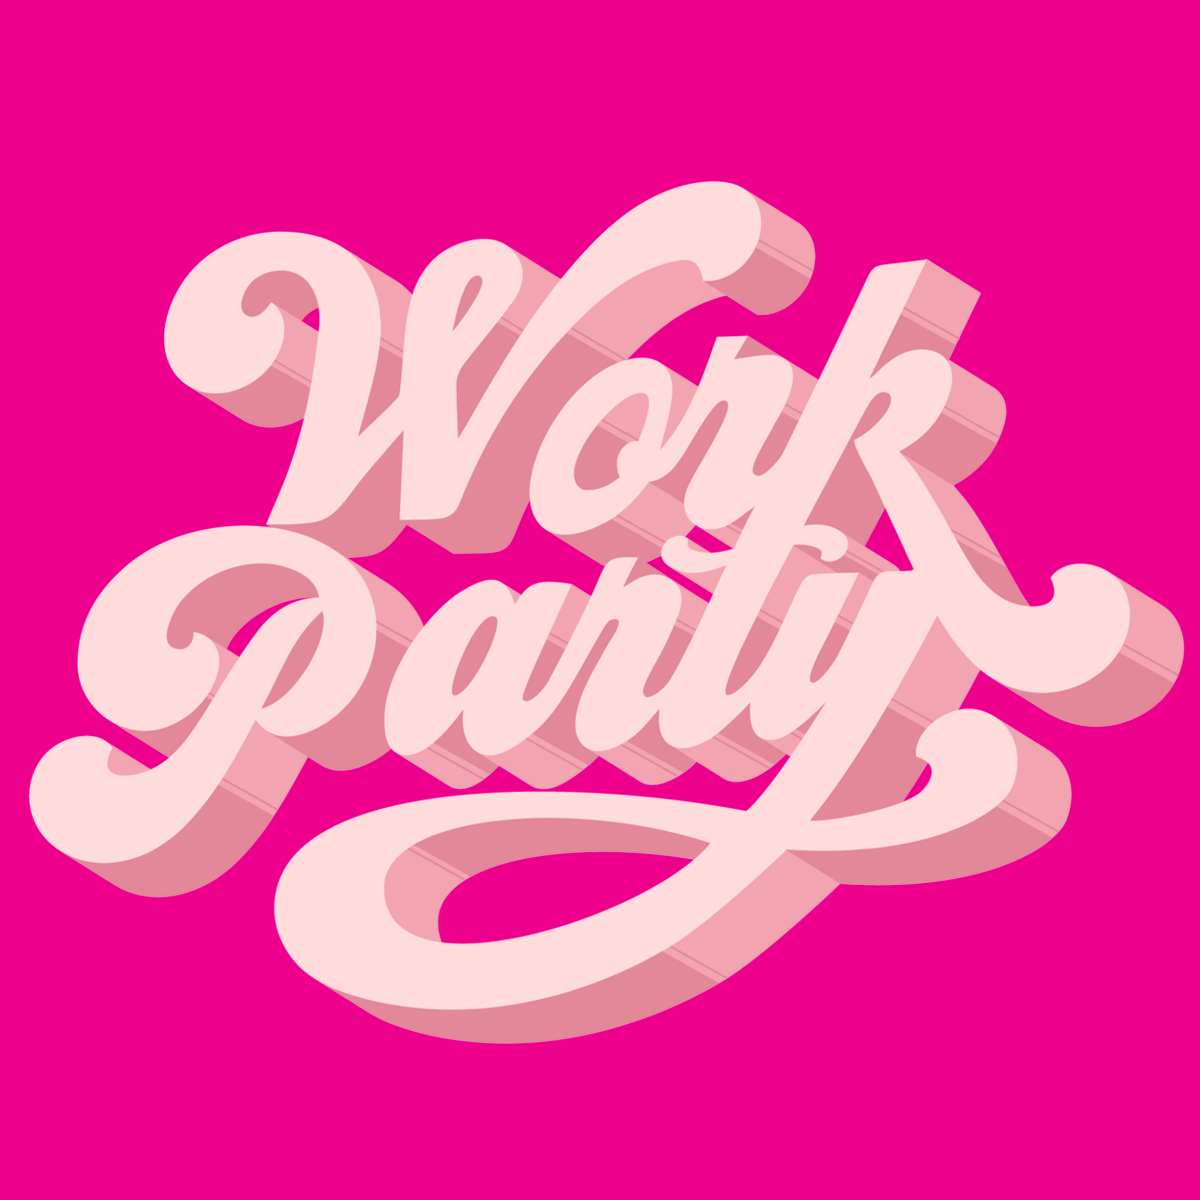 workparty.png